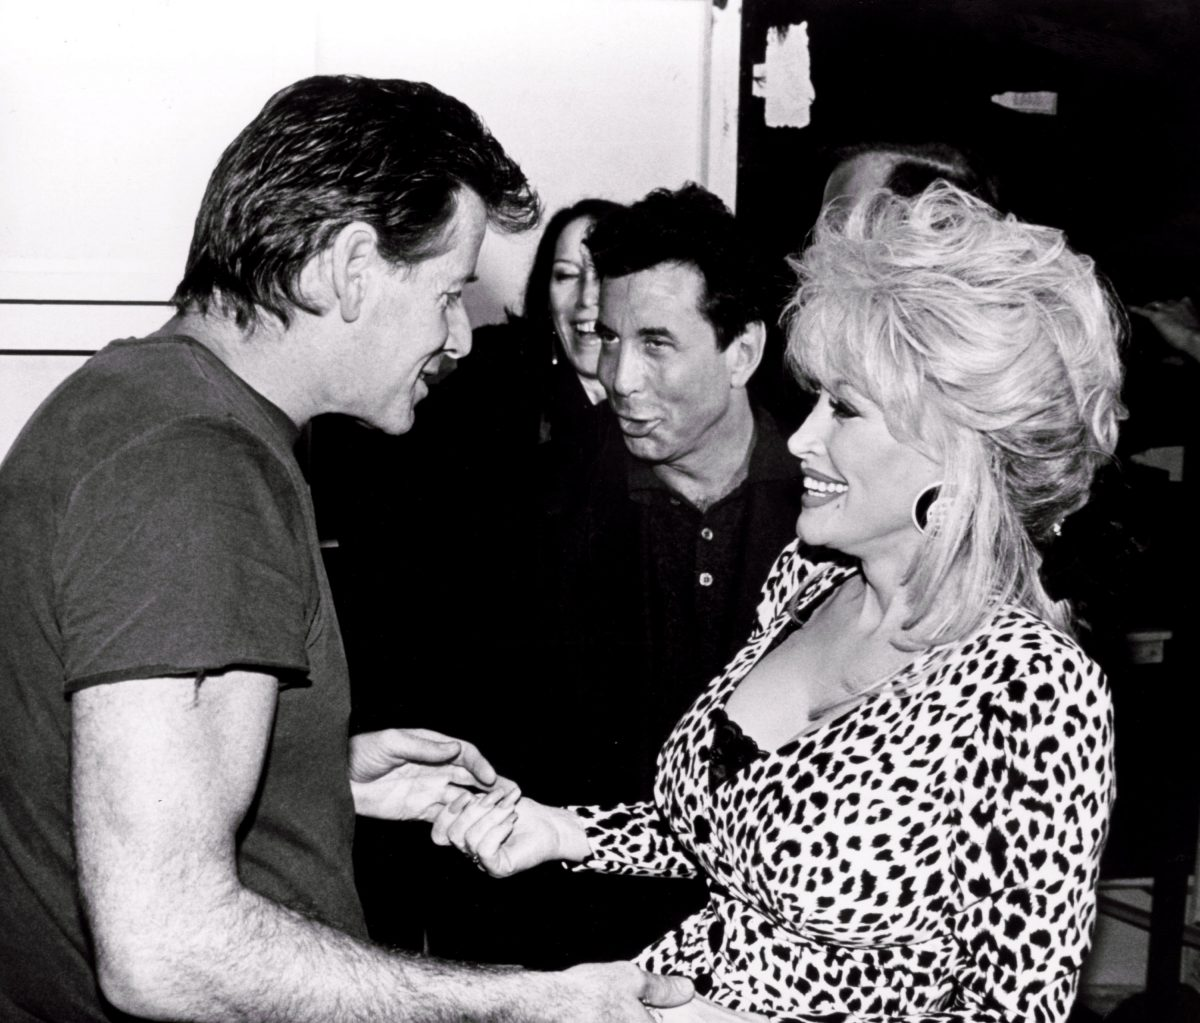 Calvin Klein and Dolly Parton at the 1994 Fall Collections Fashion Show held at Bryant Park in New York City, NY.